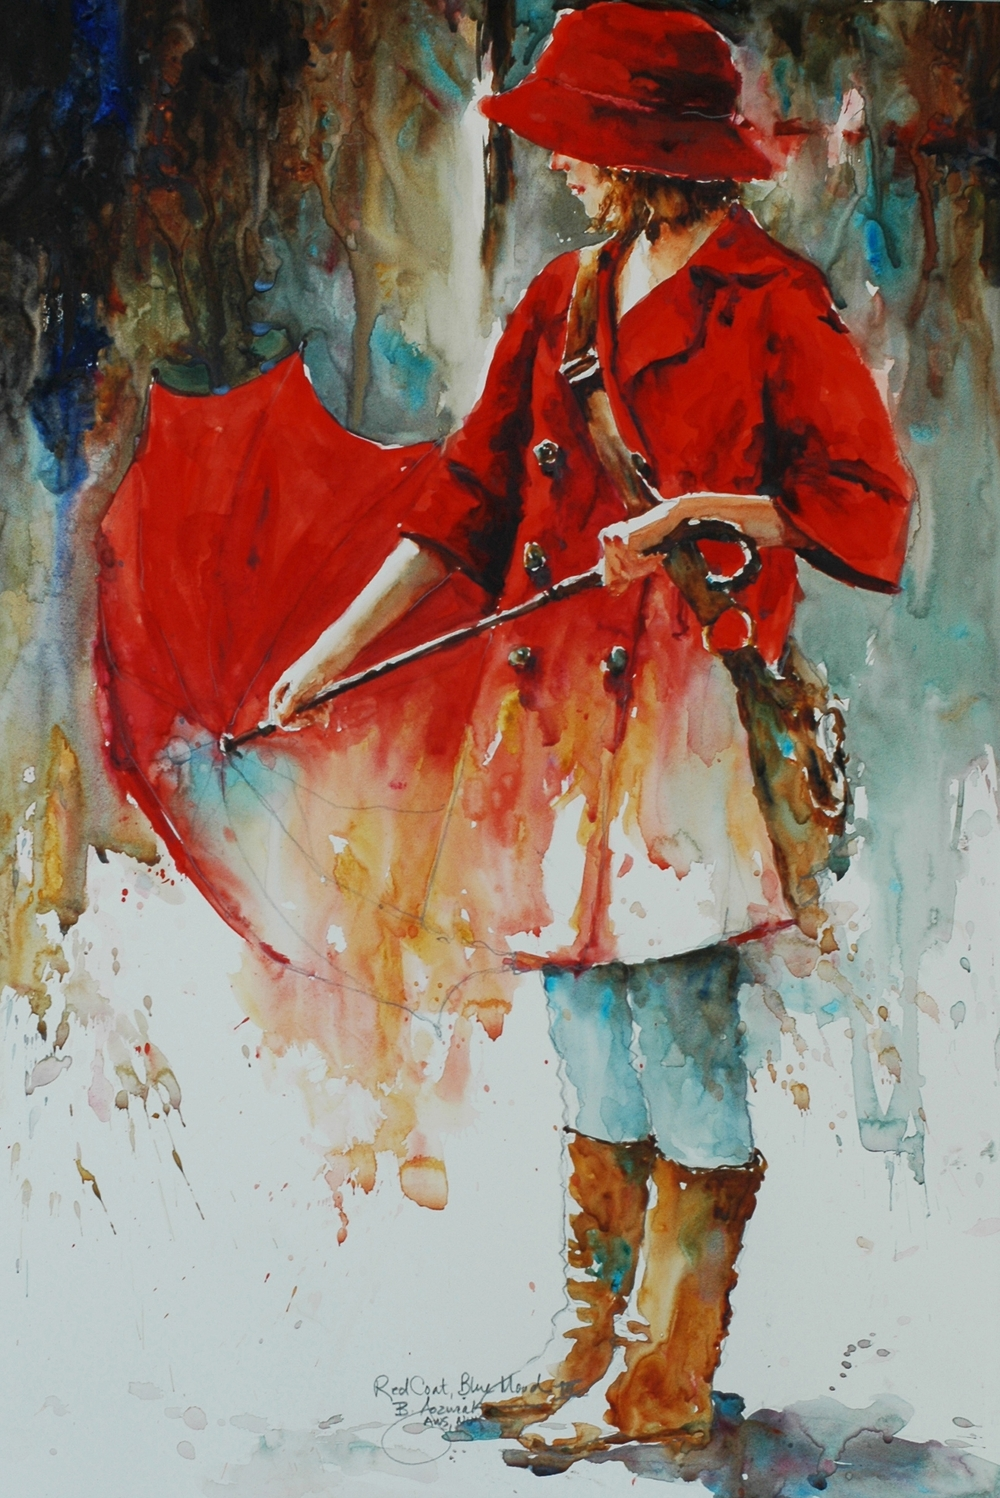 s,_Red Coat, Blue Mood III_22x15.jpg